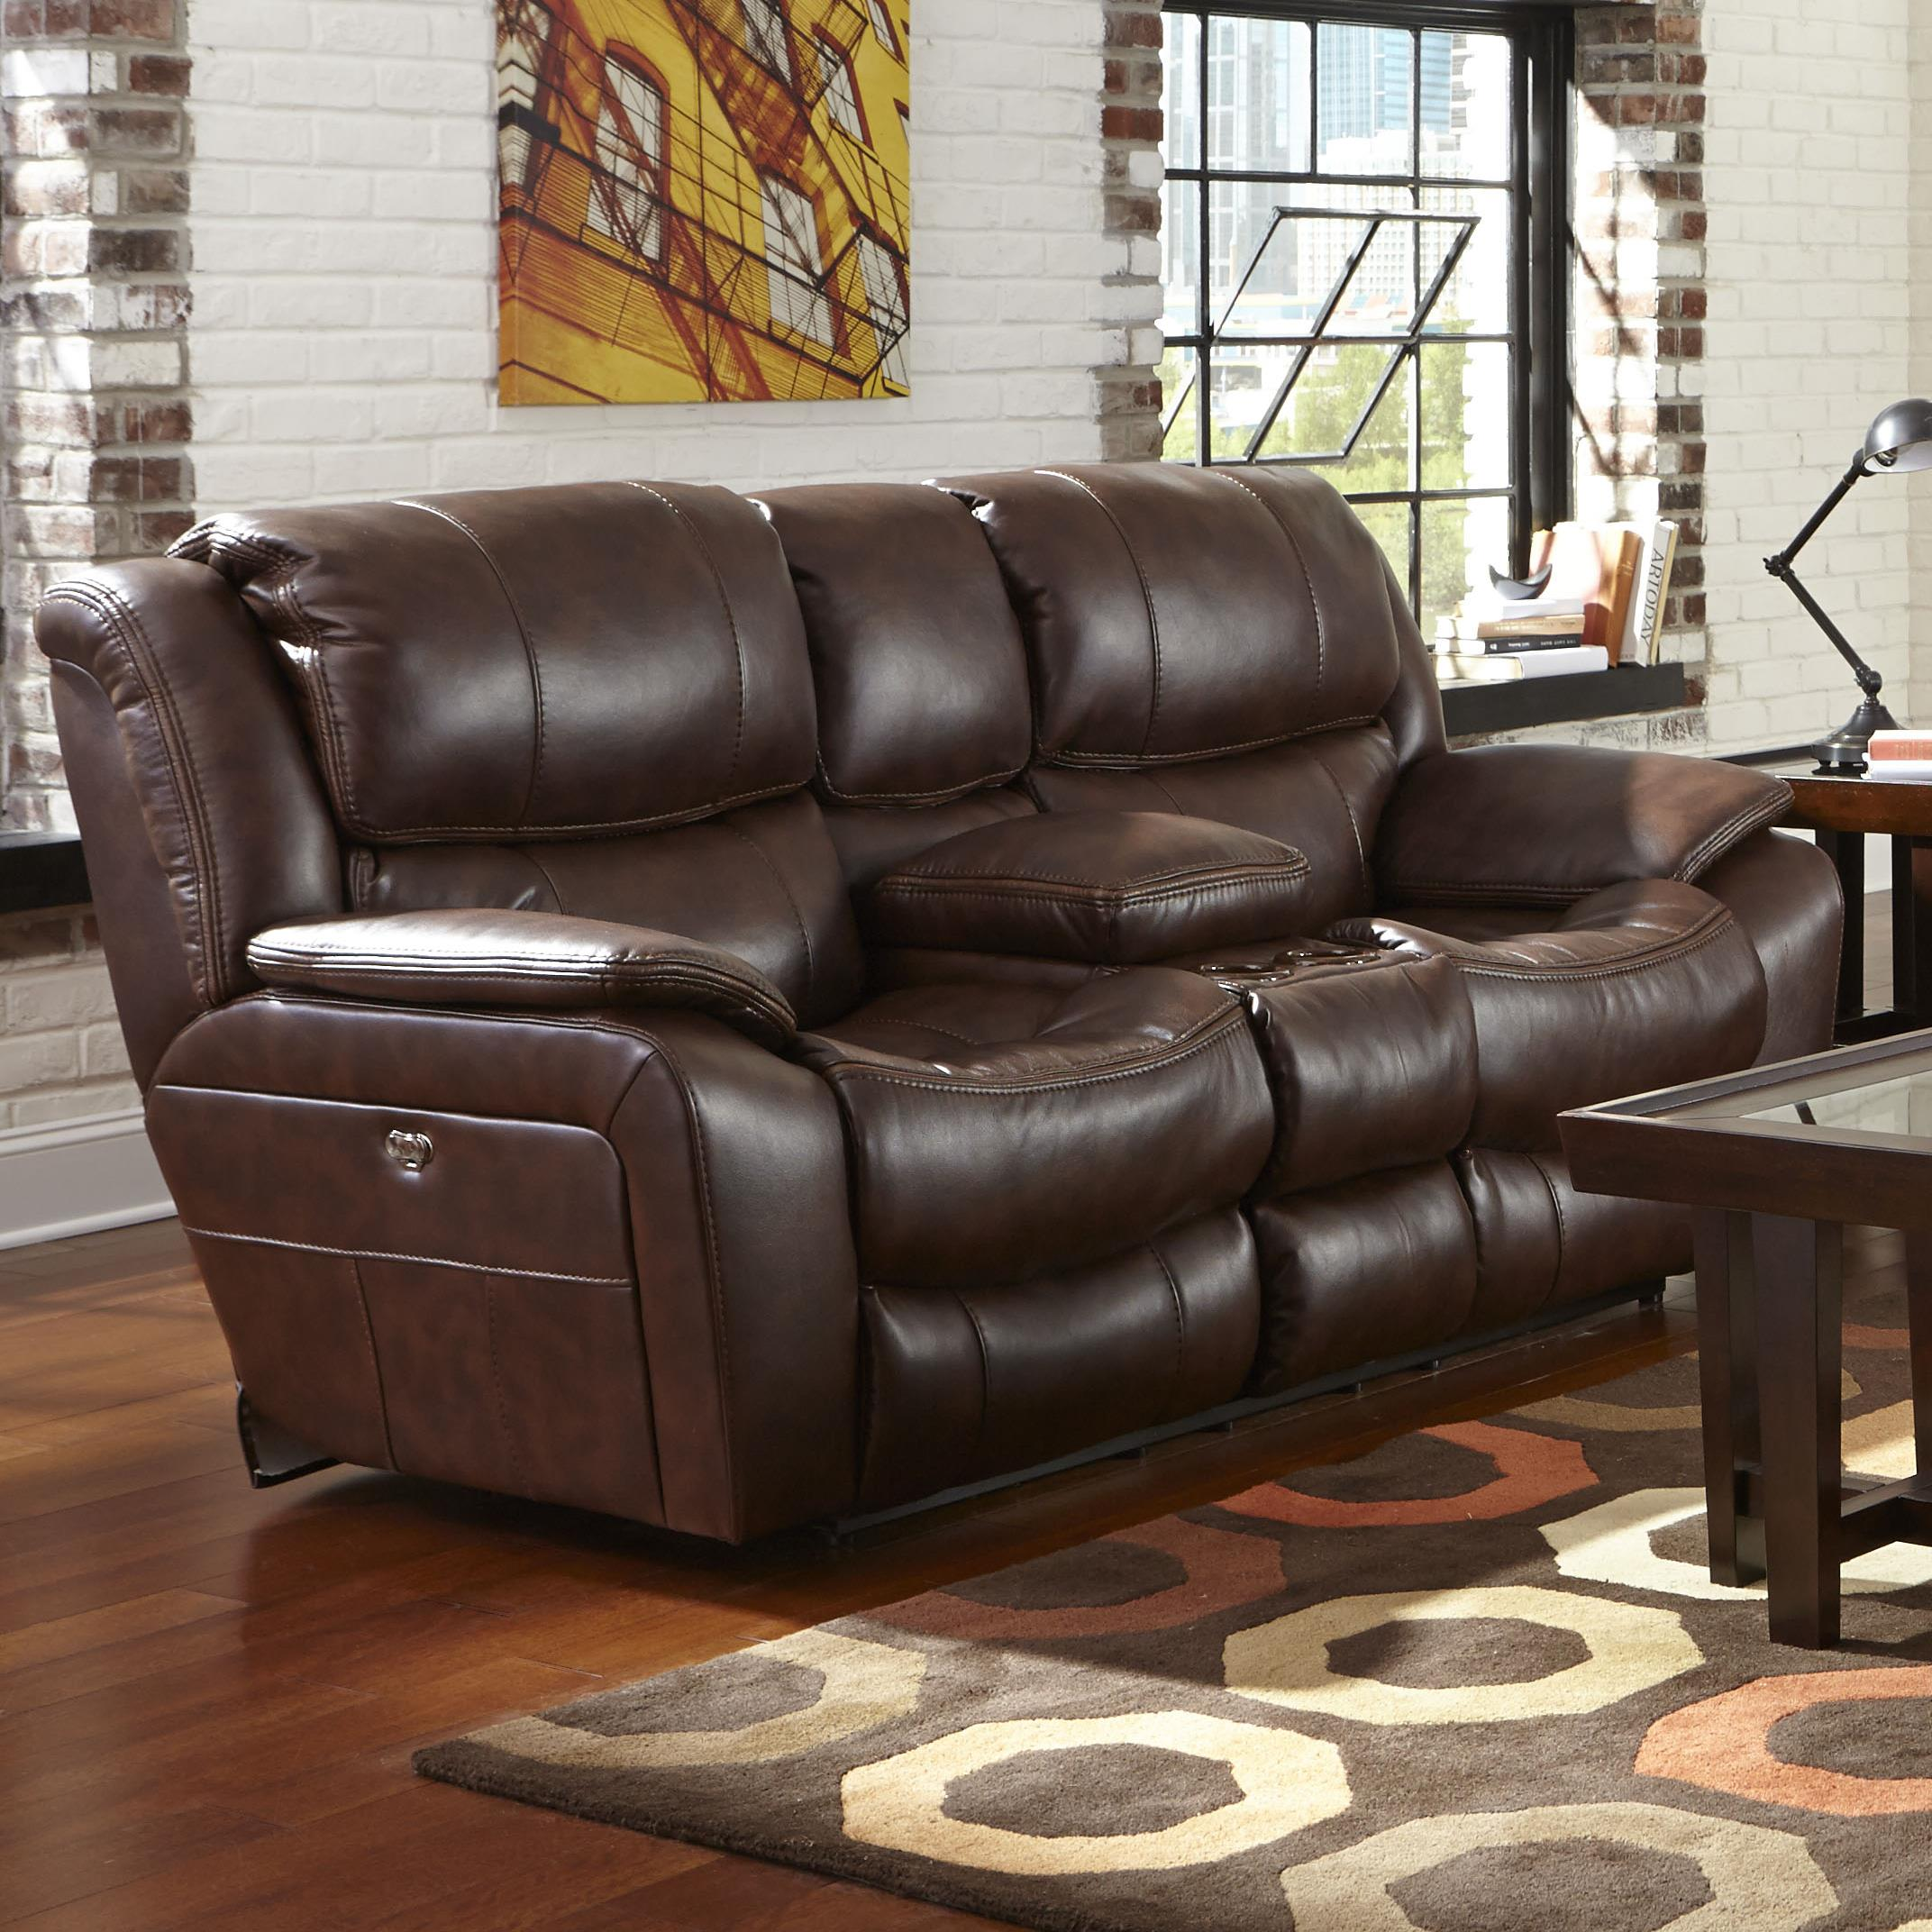 Reclining Loveseat With Usb Port Cup Holders And Storage